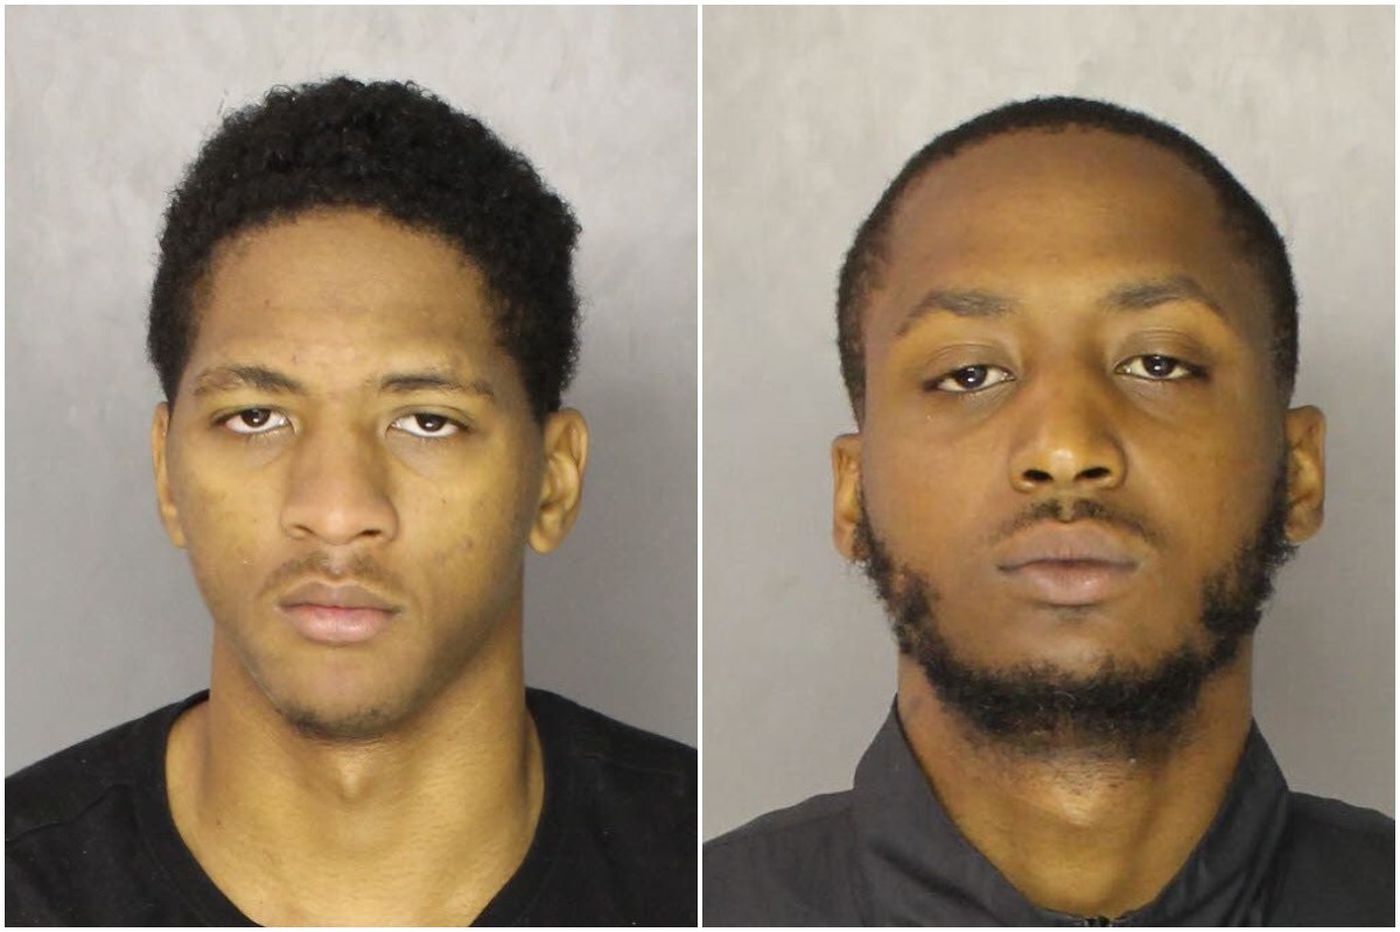 Brothers convicted in brazen West Chester murder